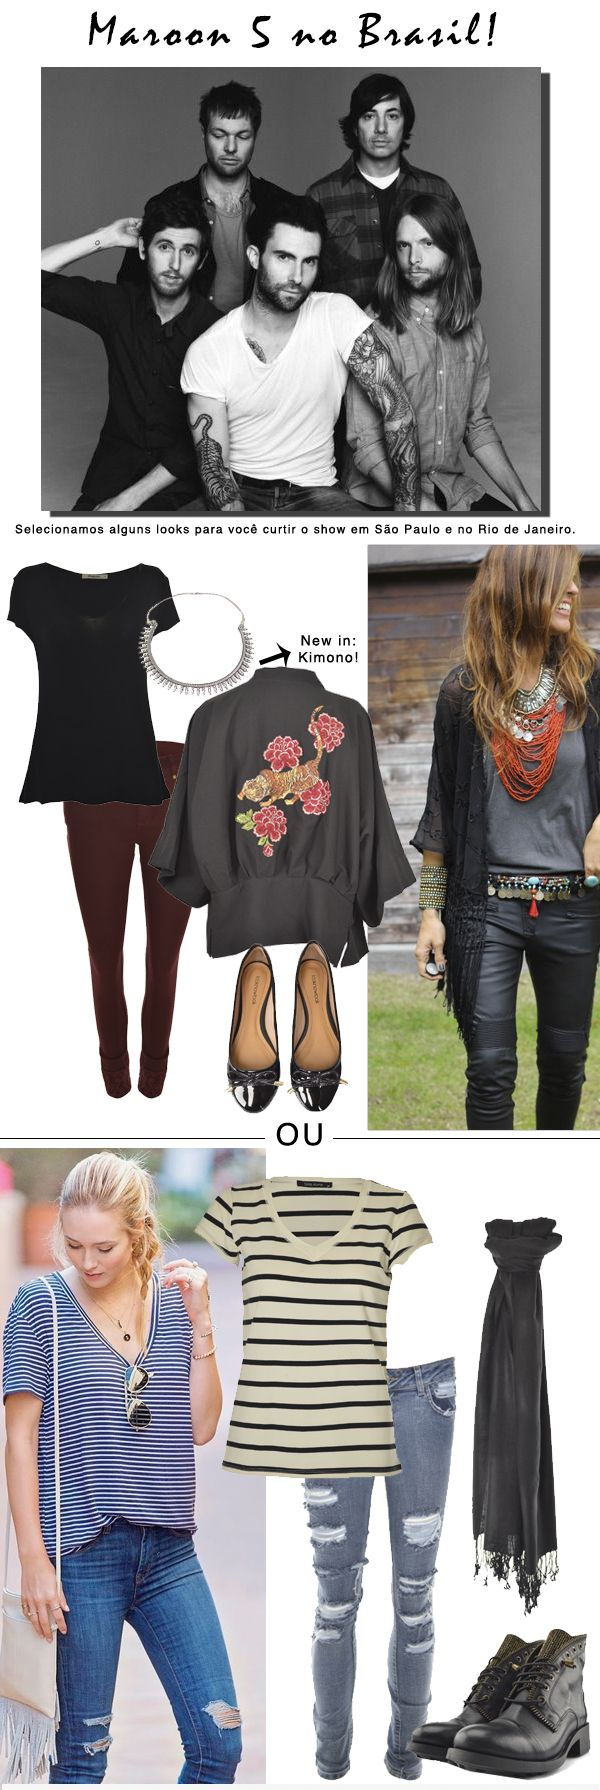 Get the Look: Shows. | Looks para shows. | Maroon 5 no Brasil. #moda #look #outfit #show #inspiração #lnl #looknowlook